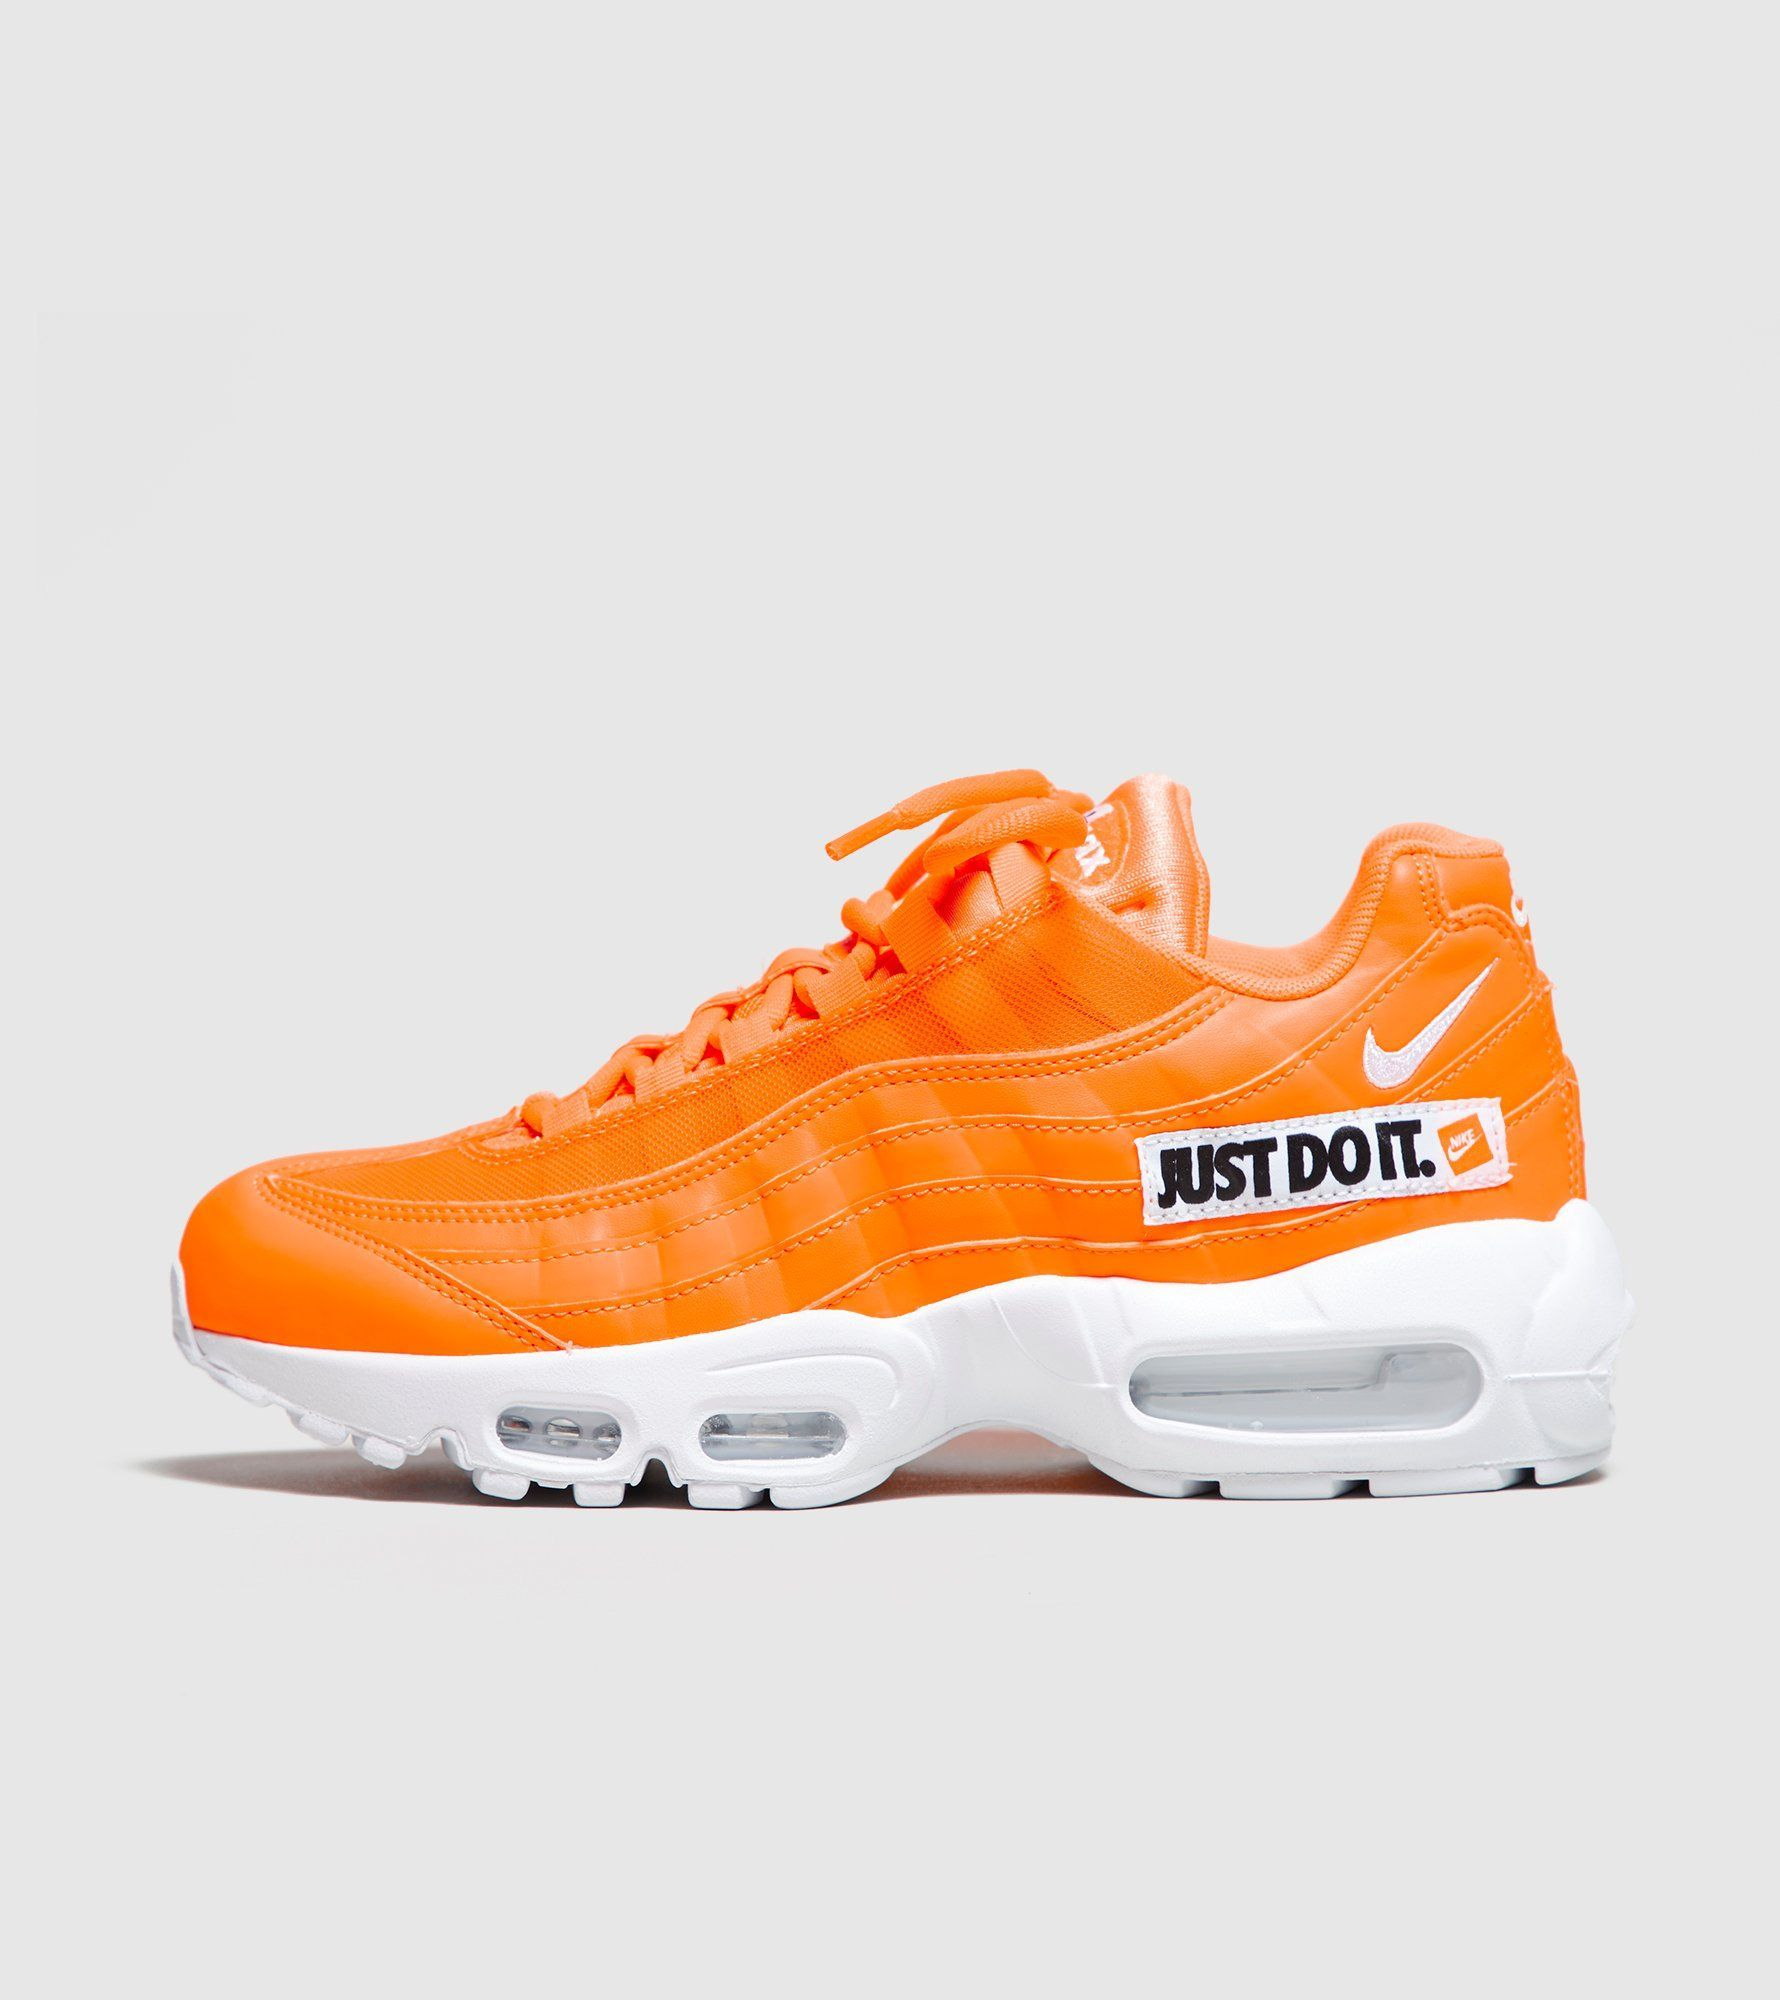 Nike Air Max 95  Just Do It  Women s - find out more on our site ... 0ea3a6217